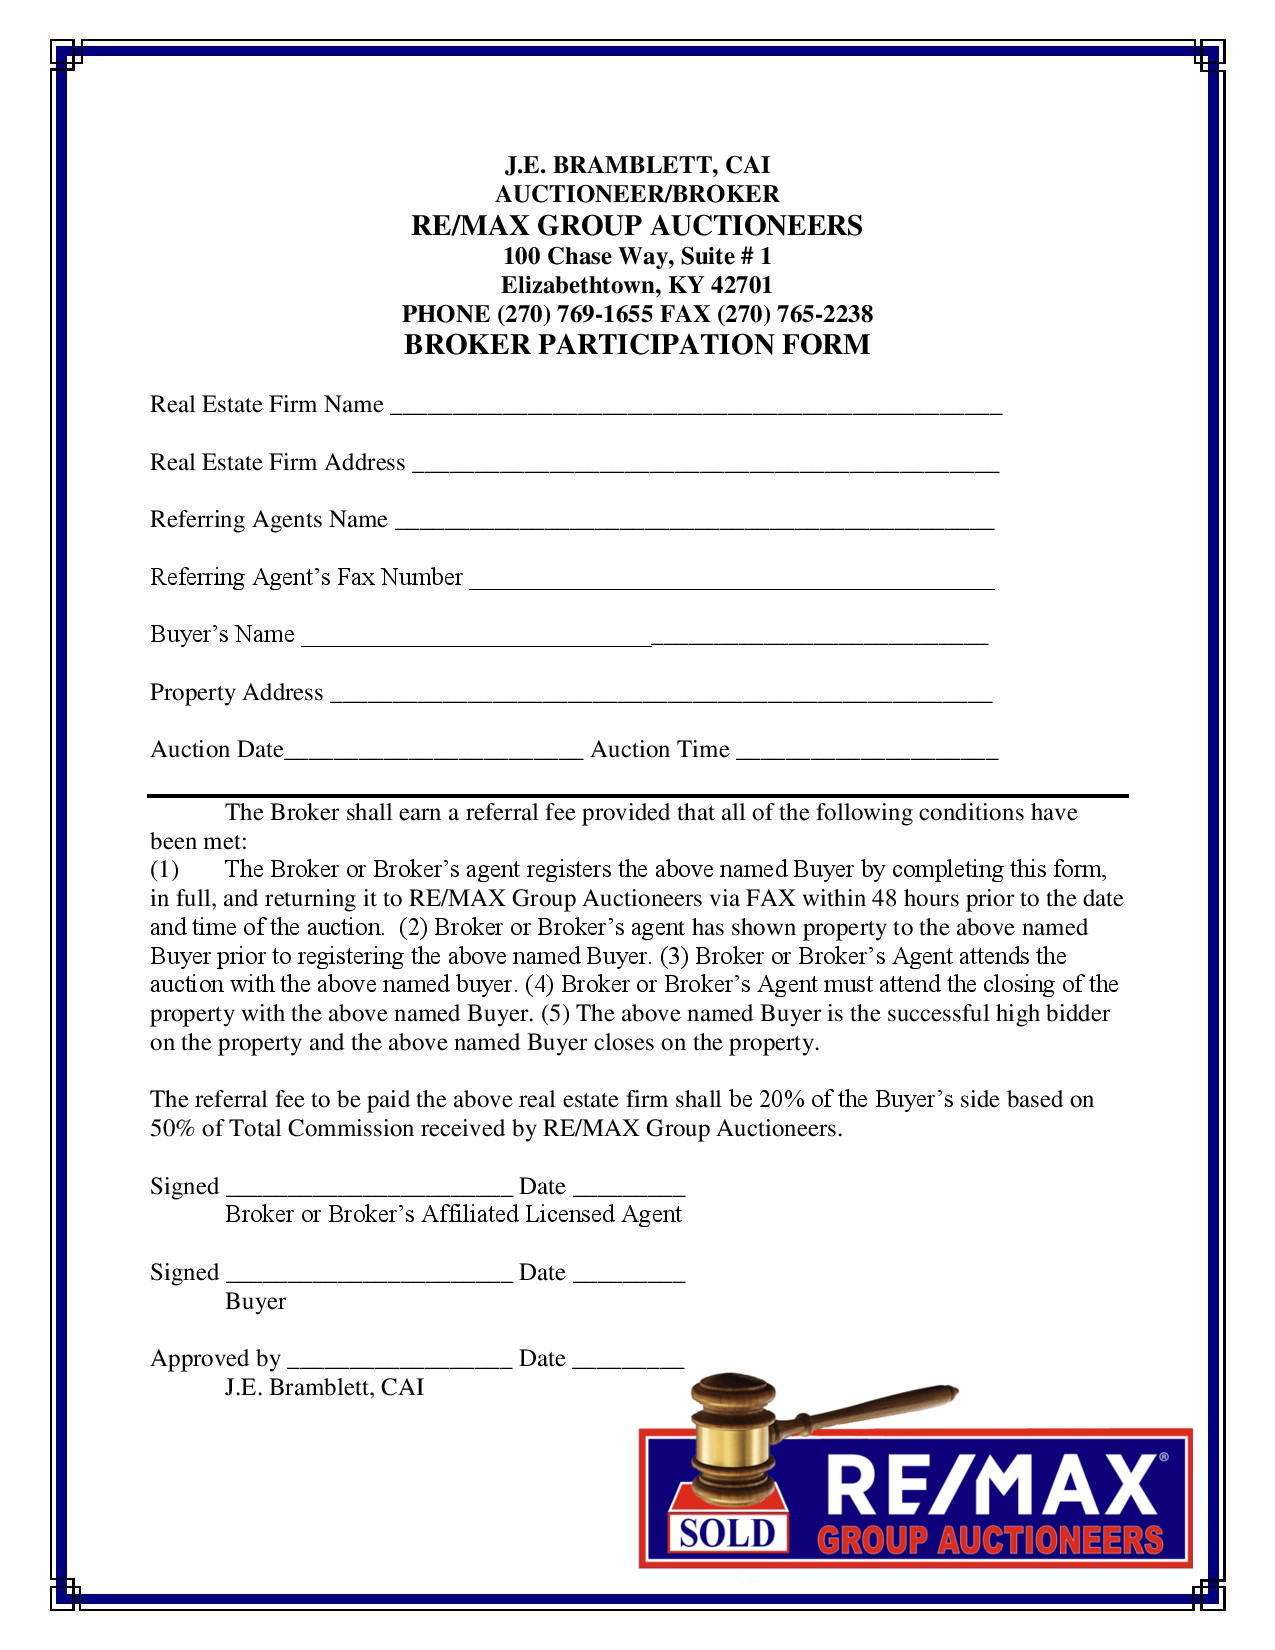 Broker Participation Form